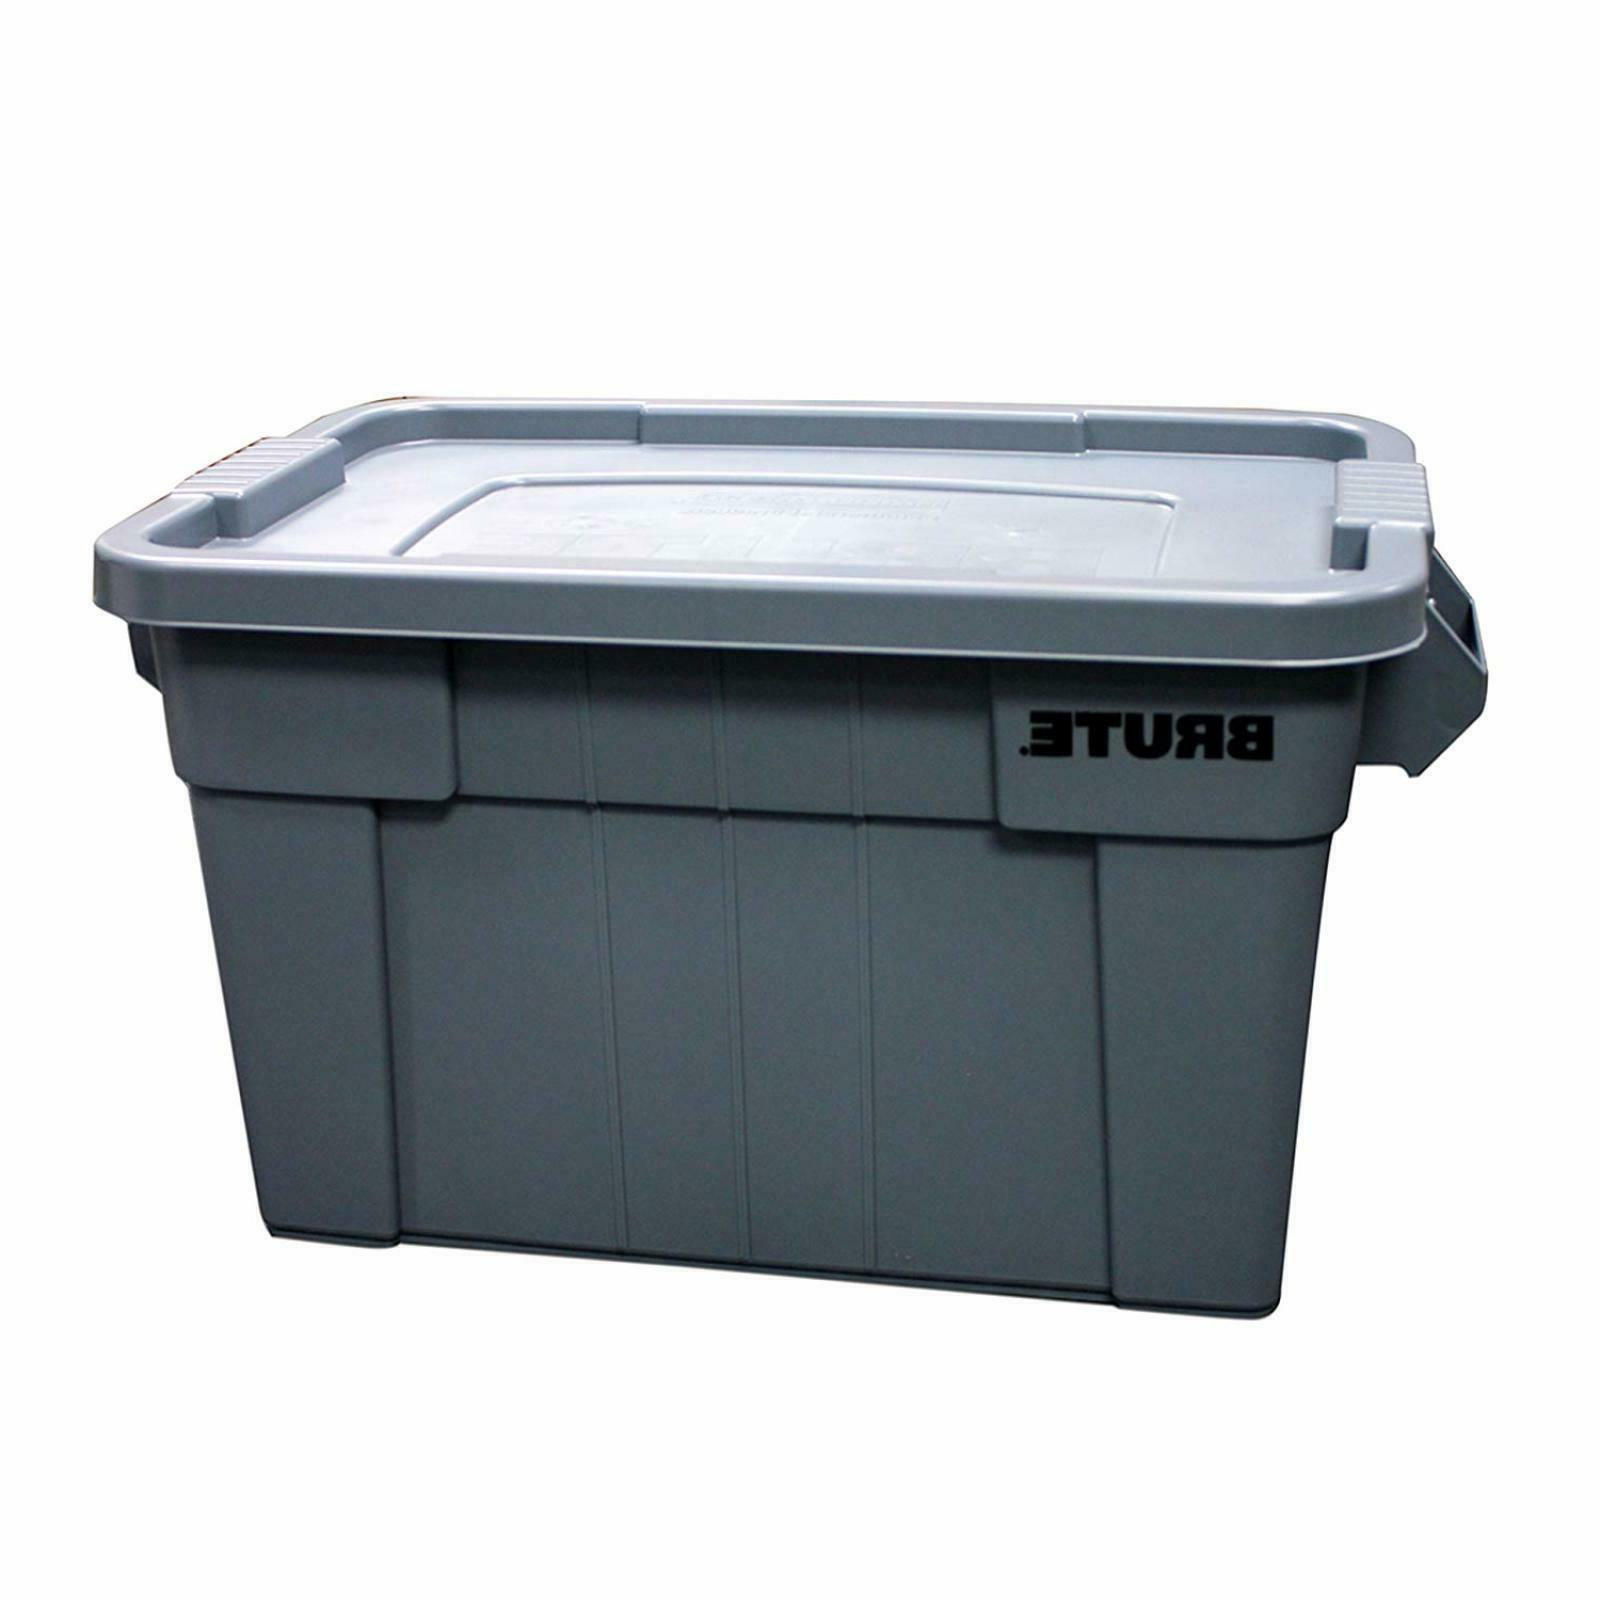 Rubbermaid Commercial BRUTE Tote with Lid, 20-Gallon, Gray,